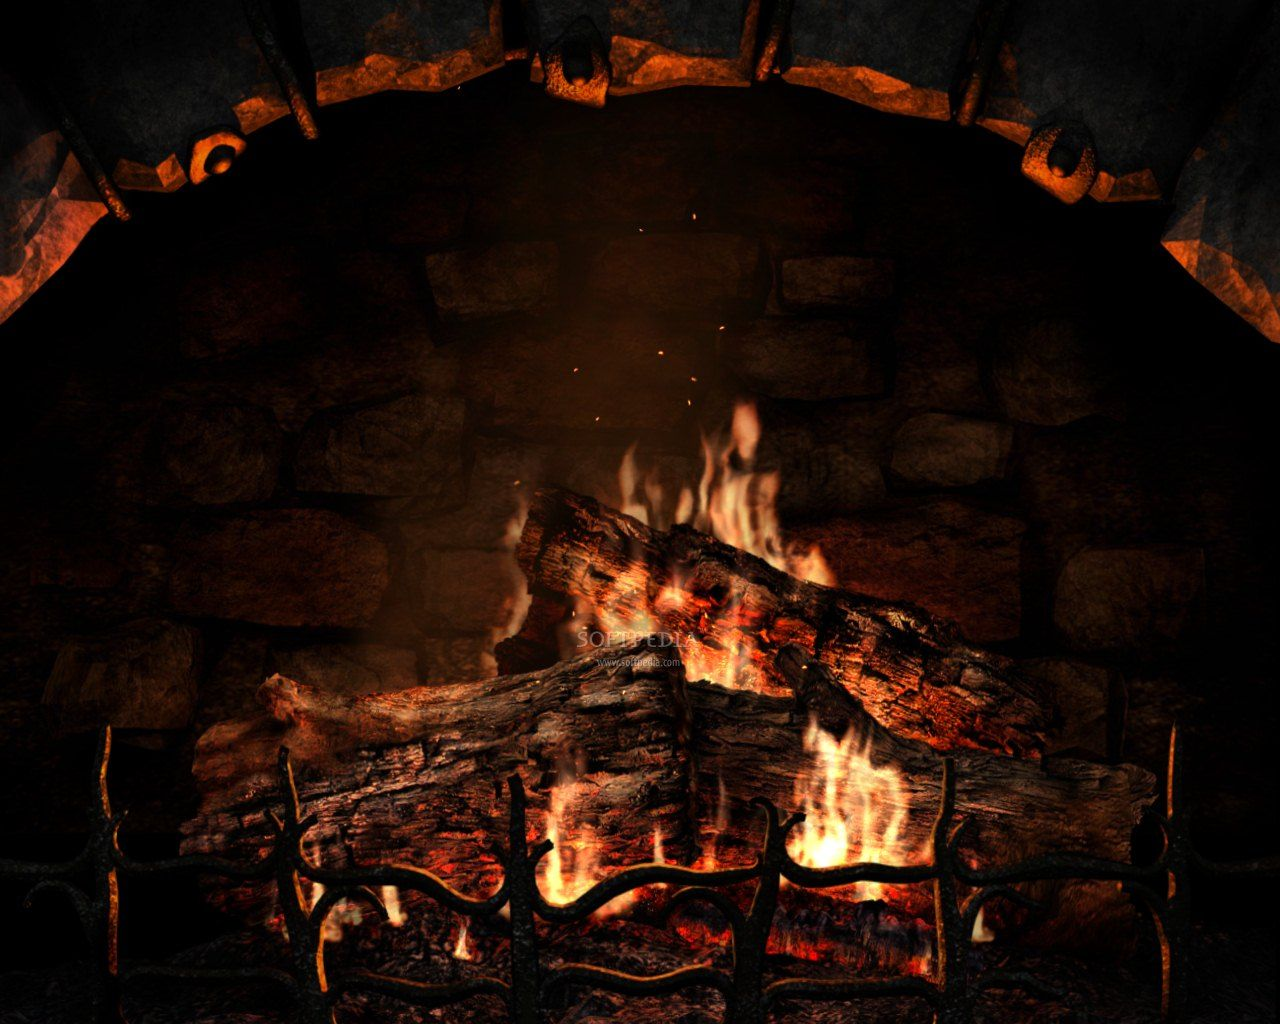 cozy fireplace wallpaperfireplace screensaver ave designs jtegbvu